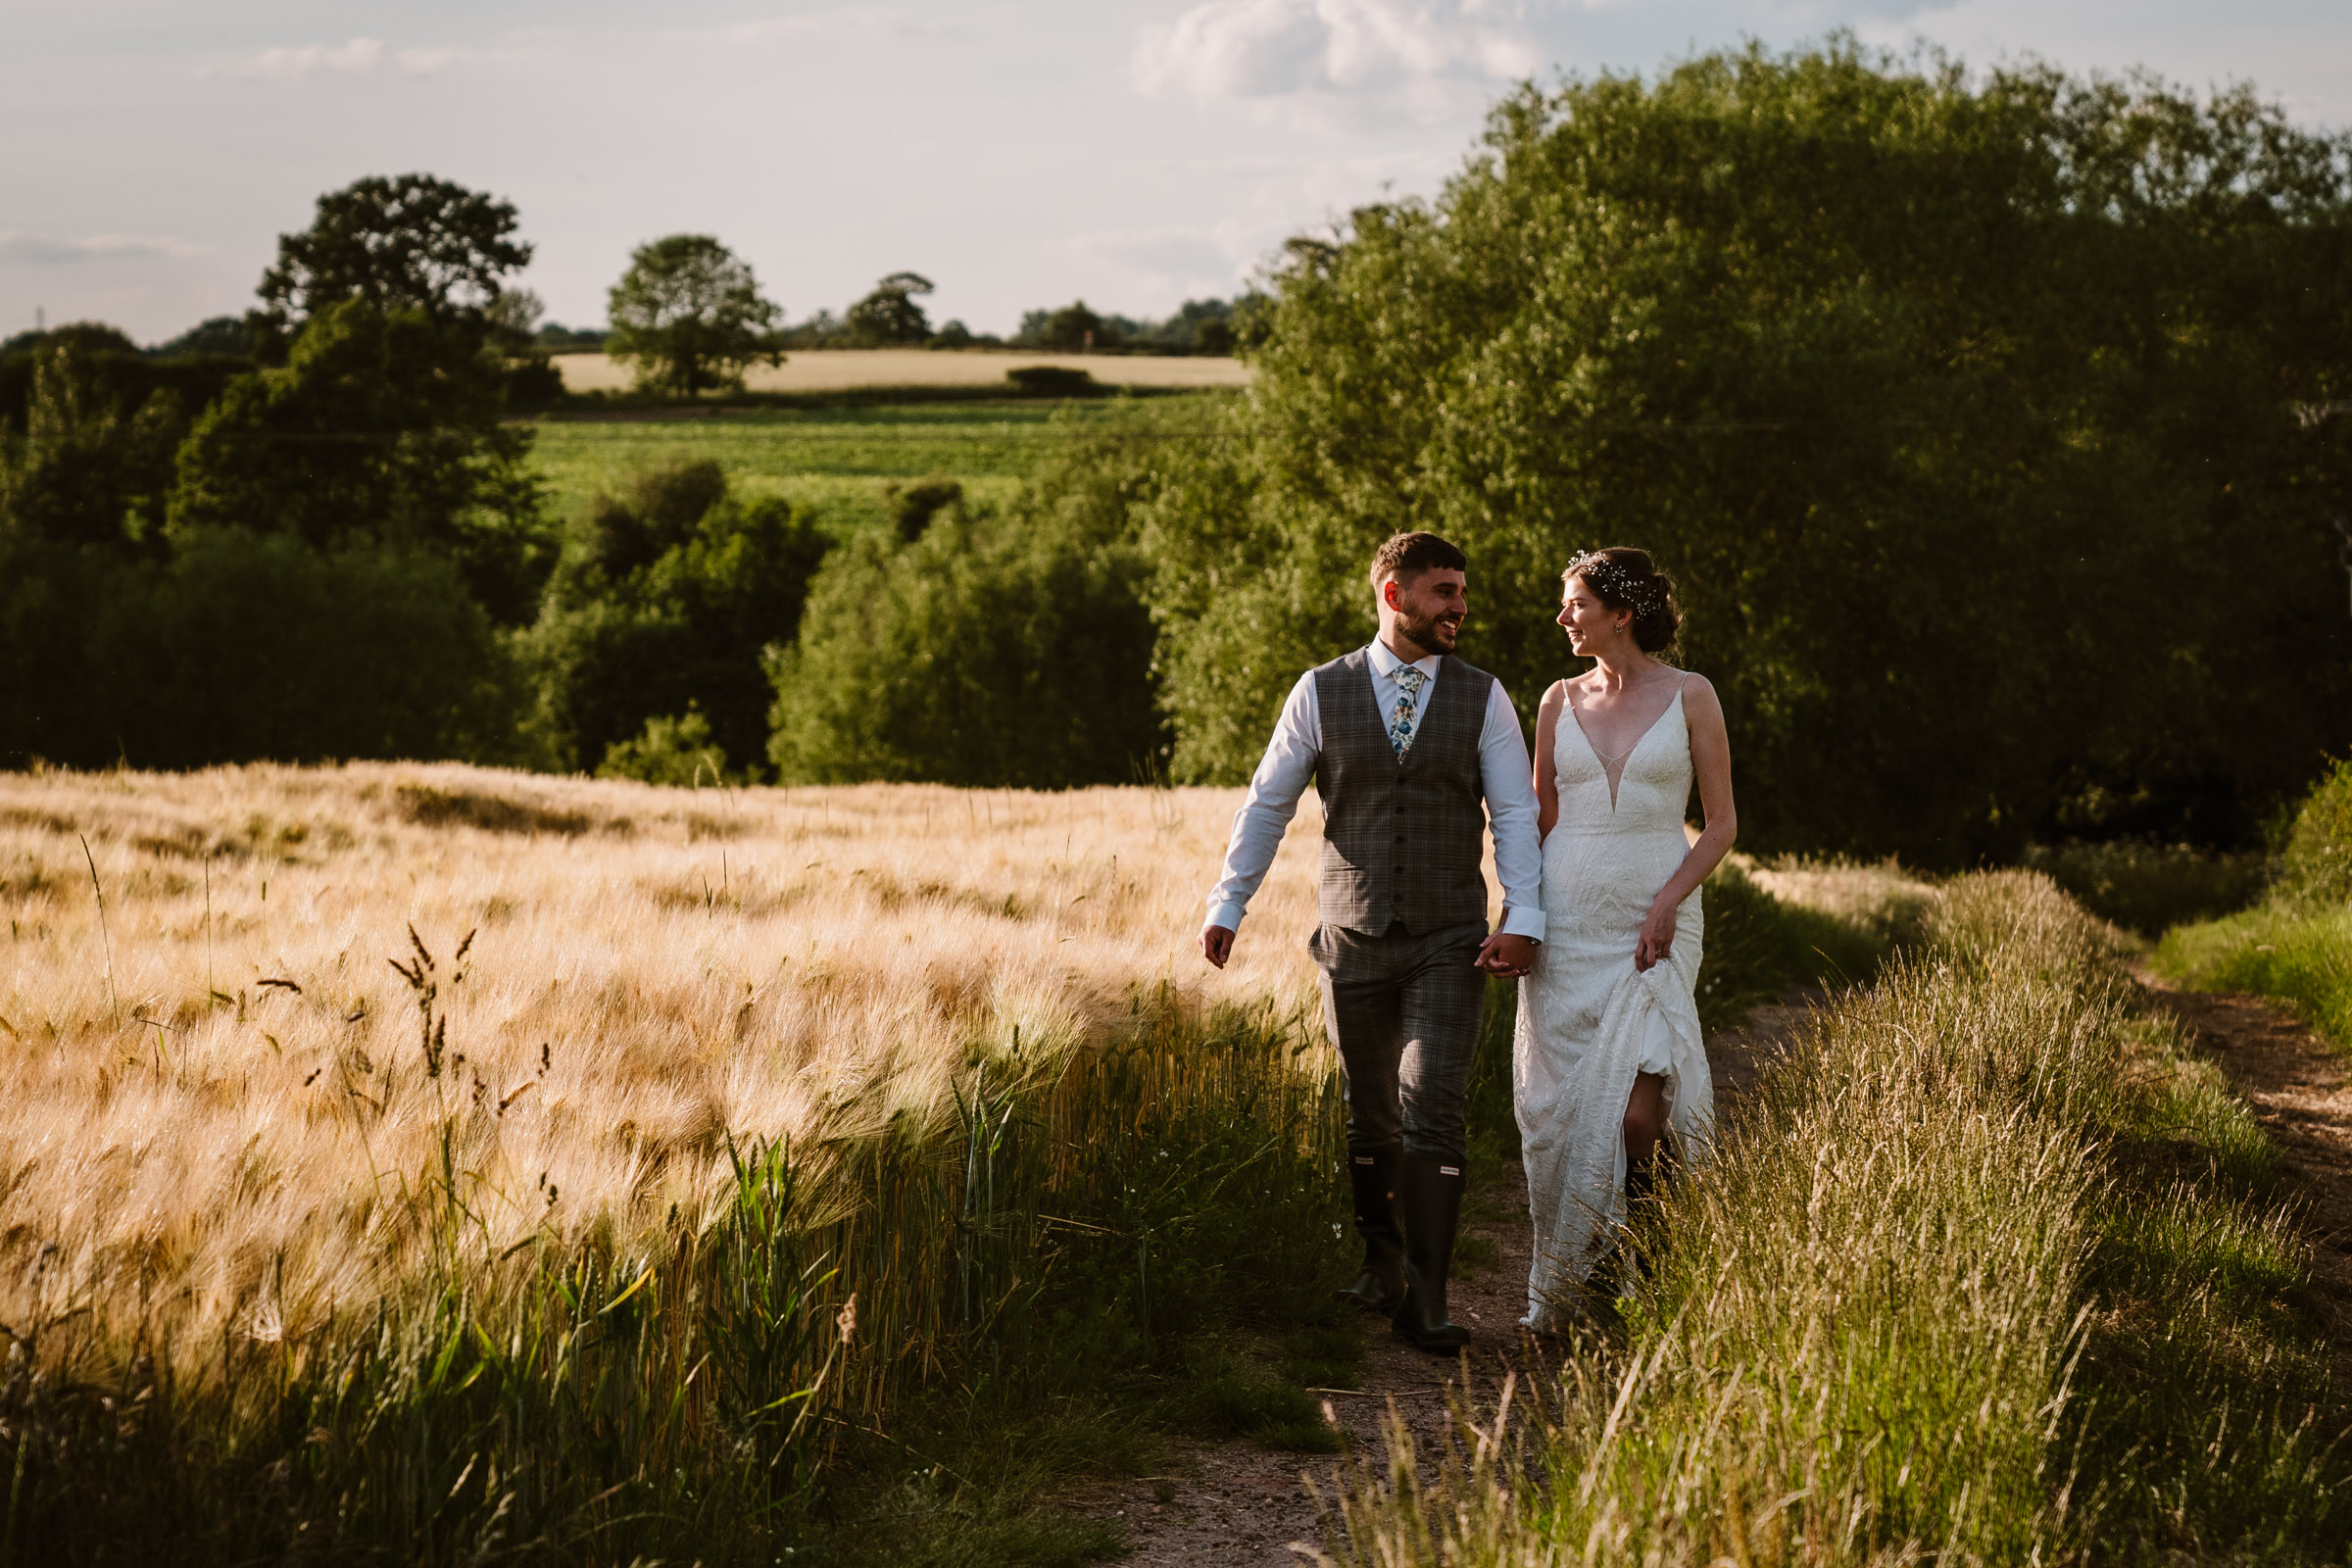 bride and groom walking hand in hand in a field